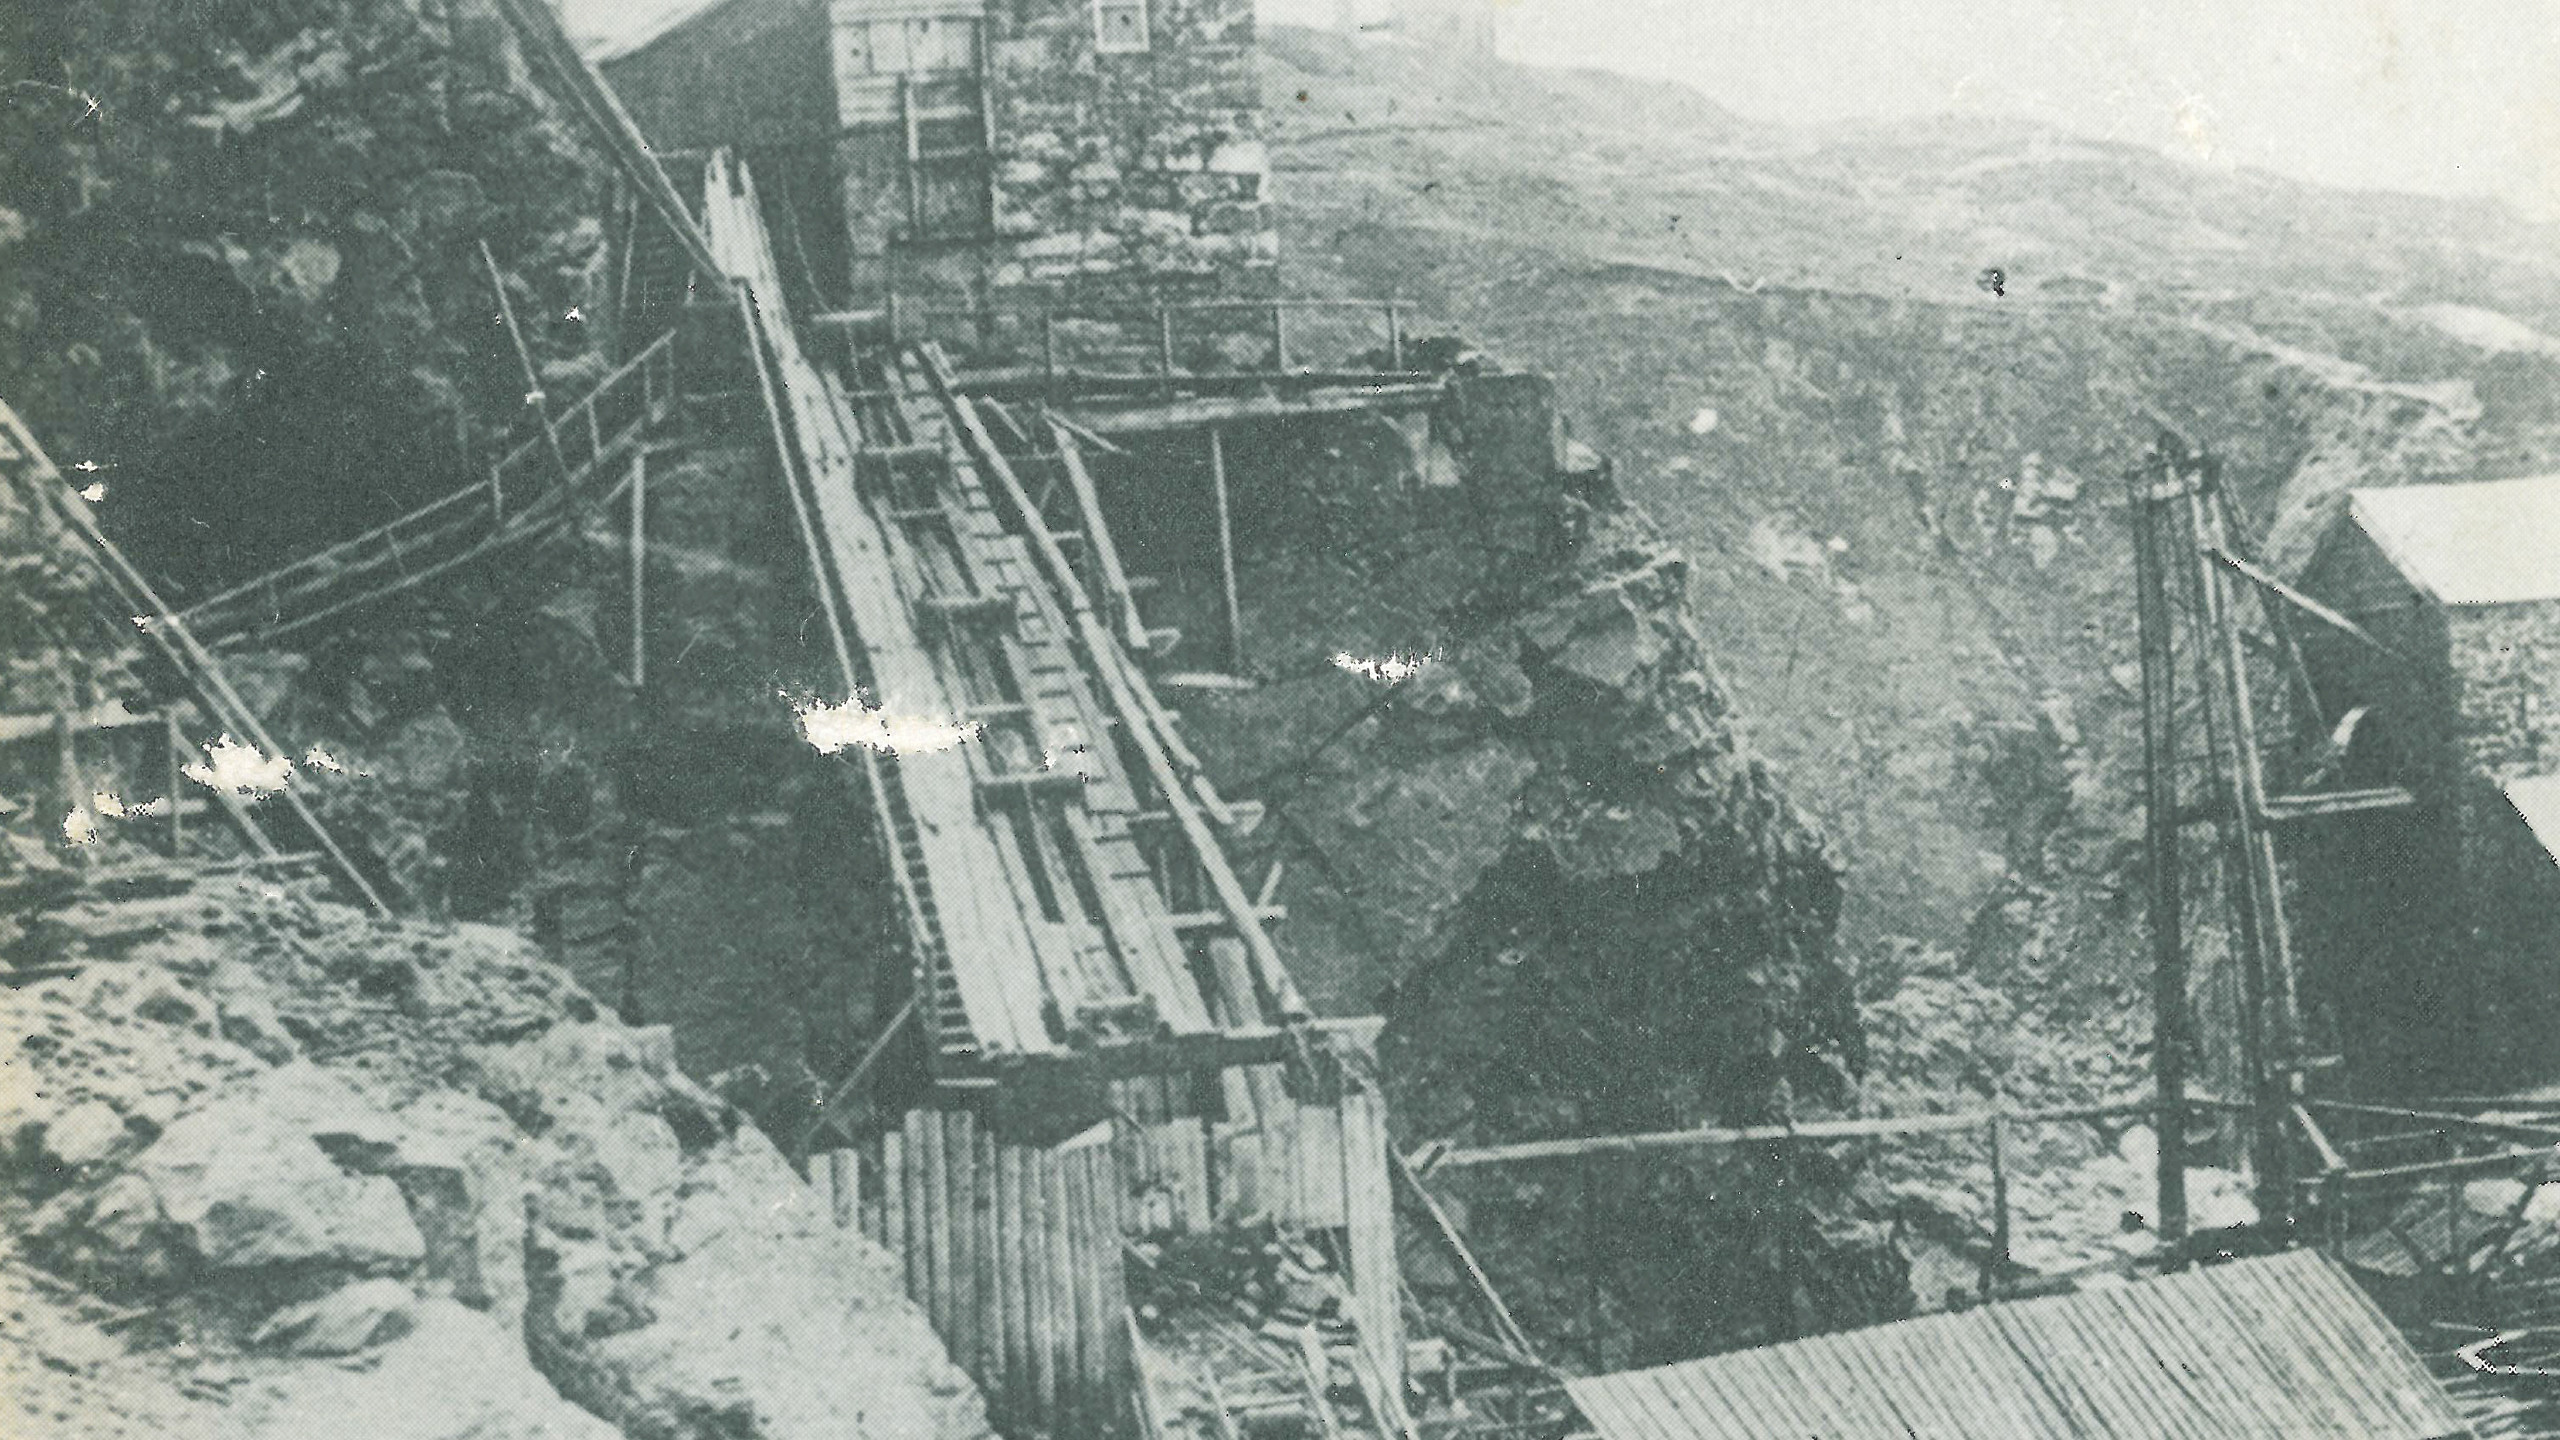 An image showing the incline shaft down into Crowns mine